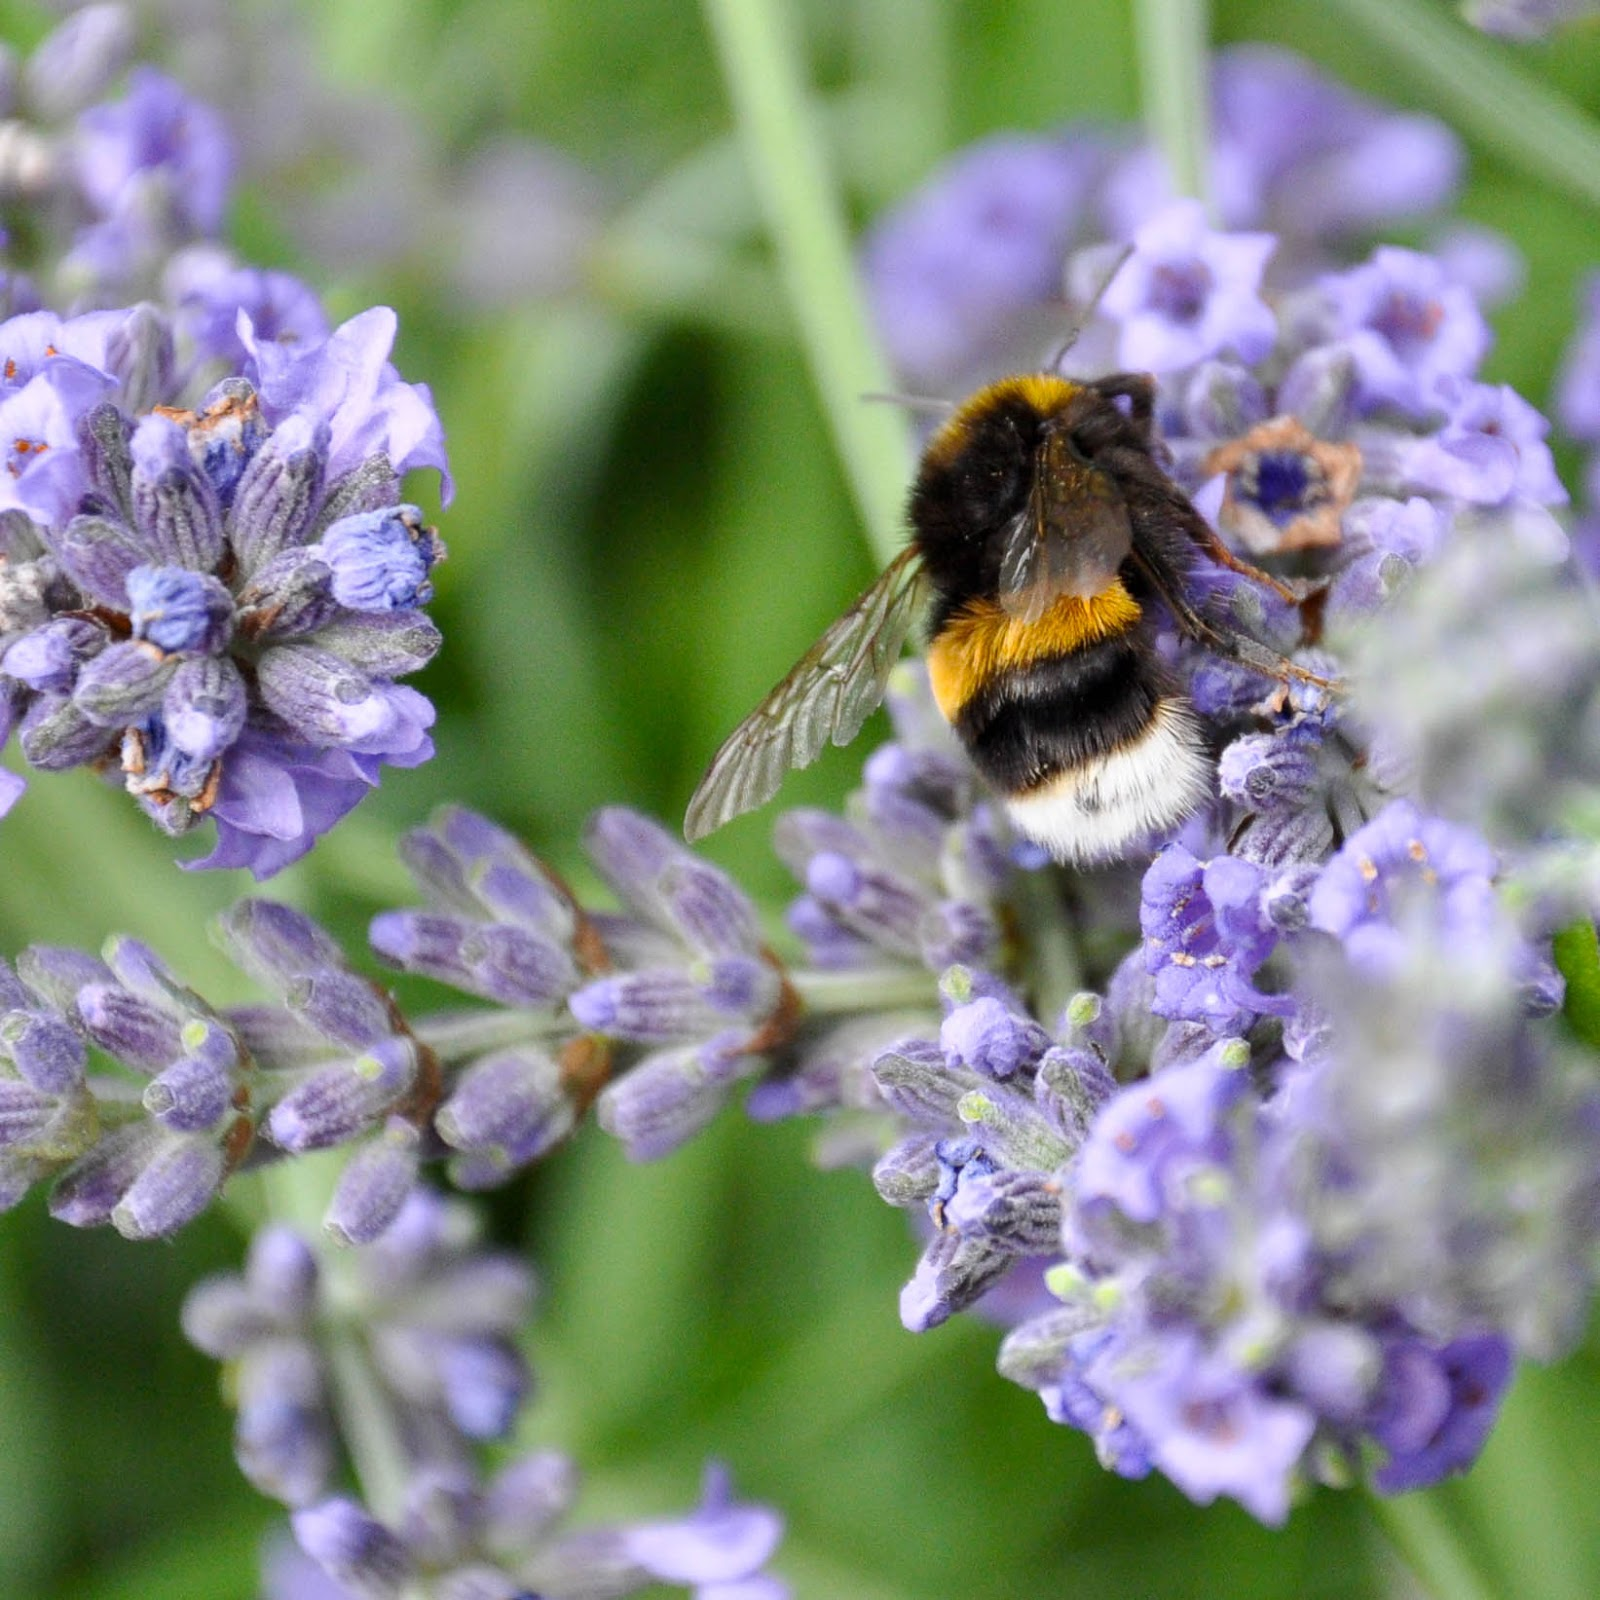 A bee on a lavender branch in the garden of St. Albans Cathedral, St. Albans, Herts, England